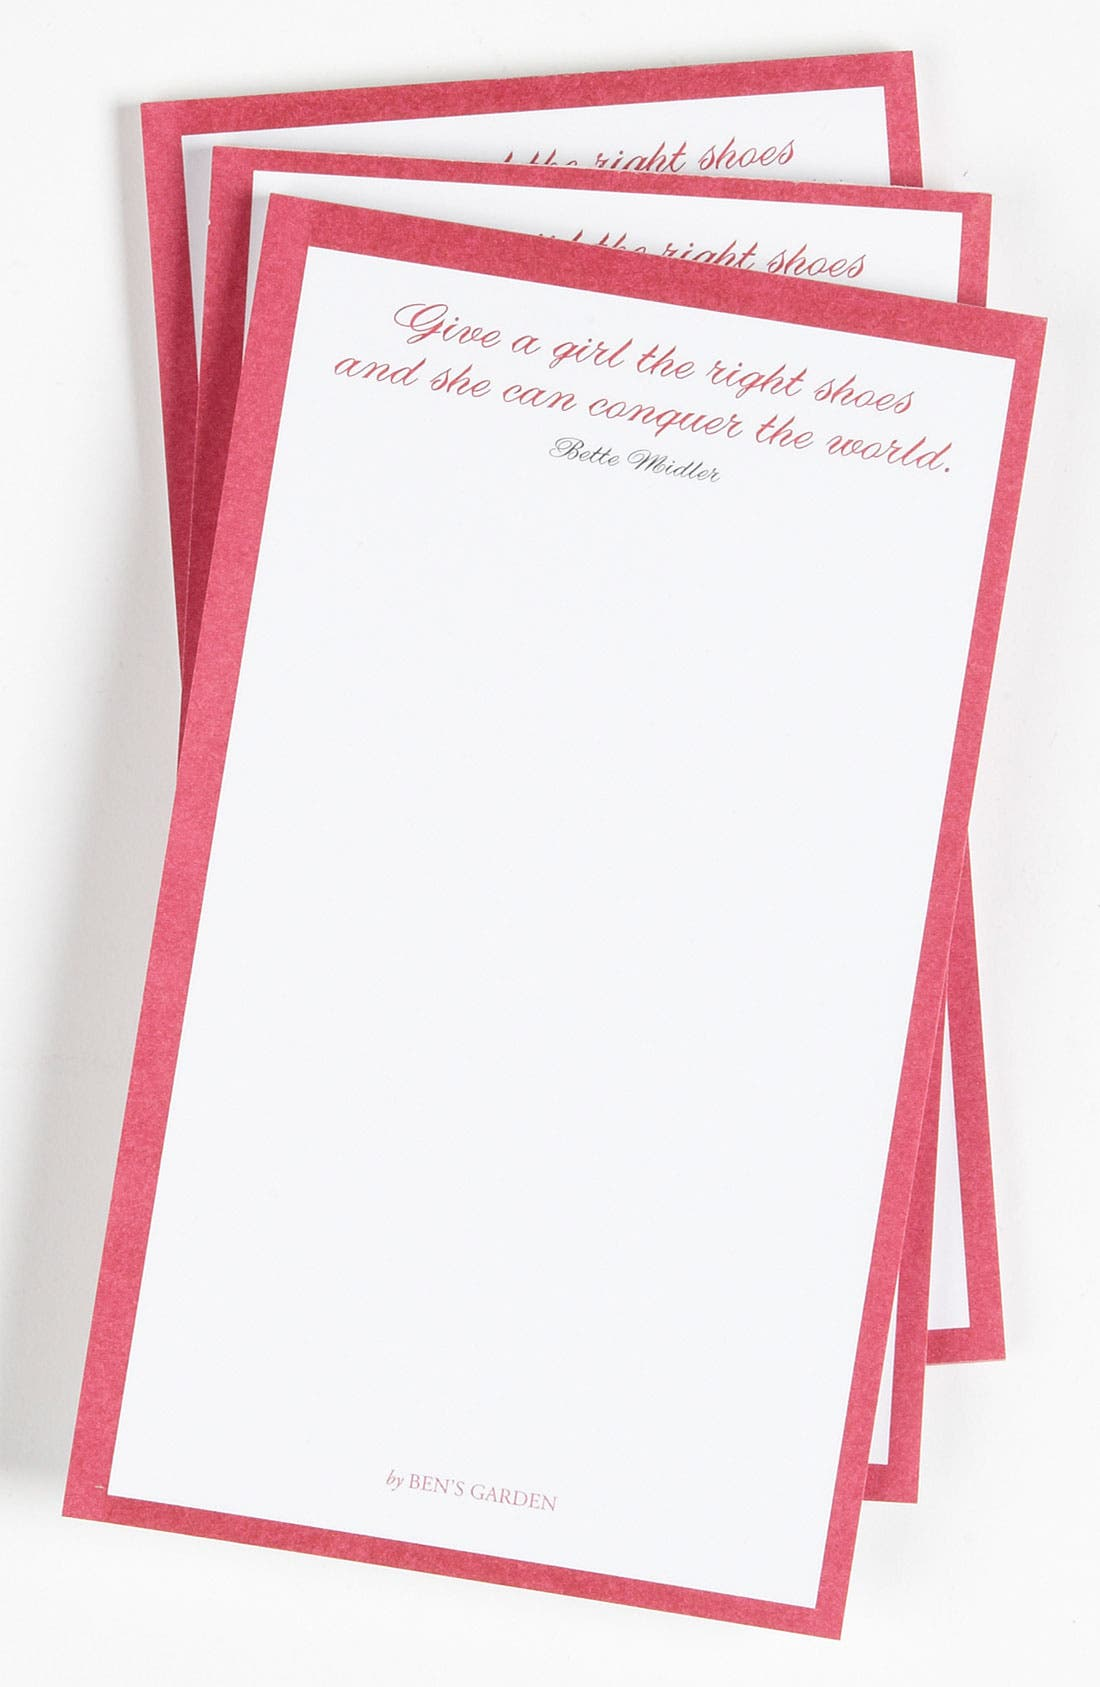 Main Image - Ben's Garden 'The Right Shoes' Notepads (3-Pack)